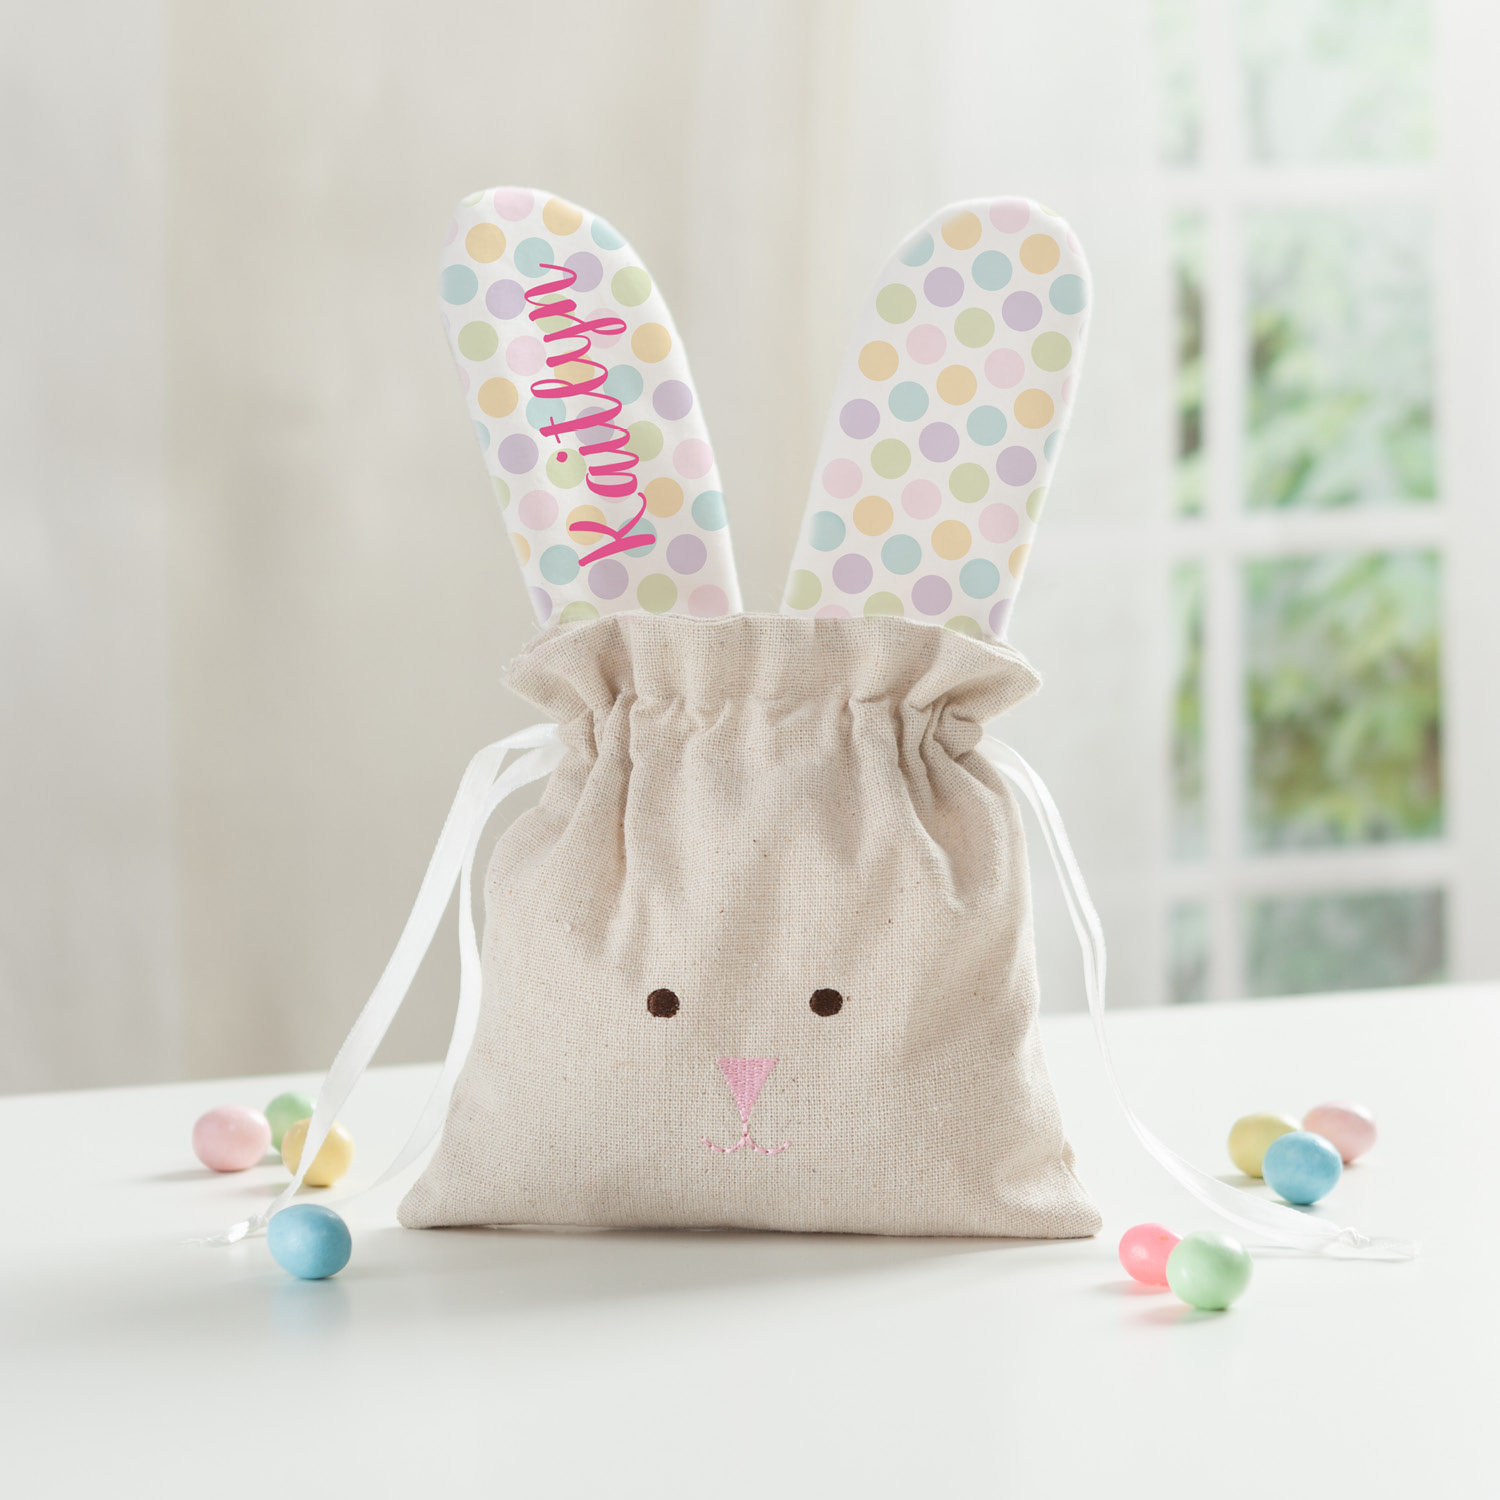 Personalized Linen Drawstring Bunny Easter Bag